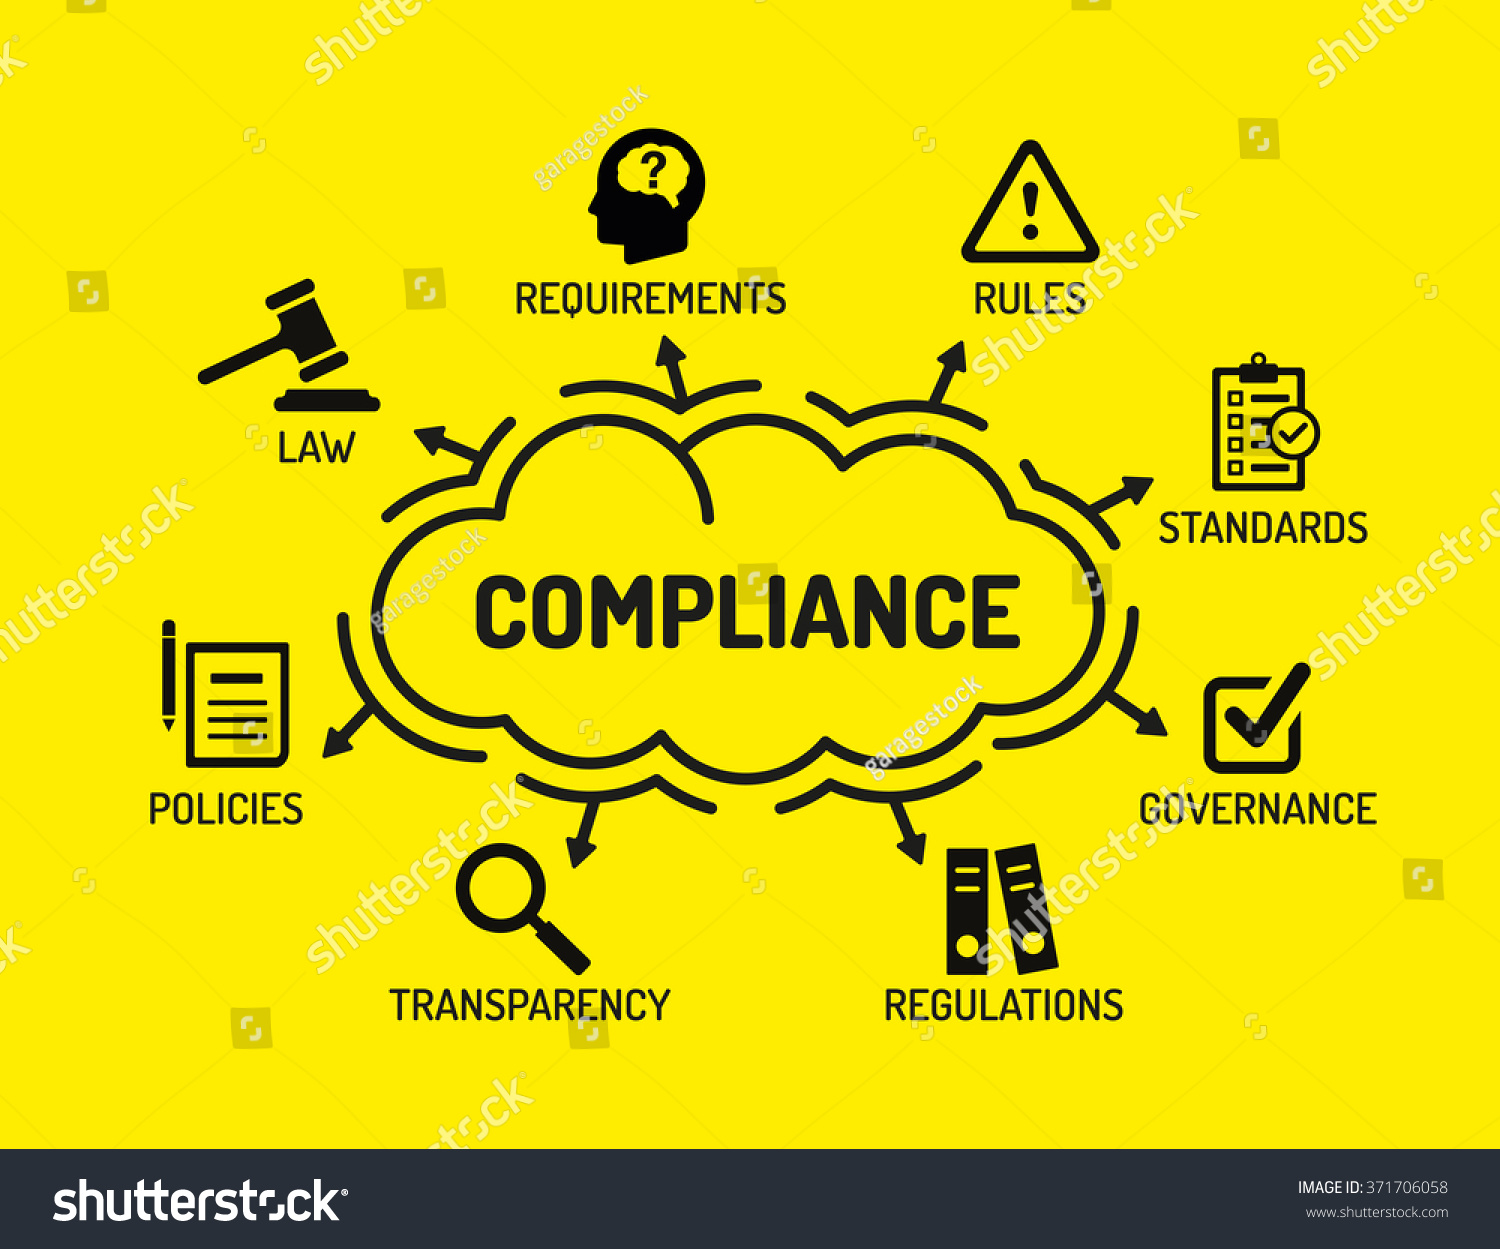 Compliance Chart Keywords Icons On Yellow Stock Vector 371706058 - Shutterstock